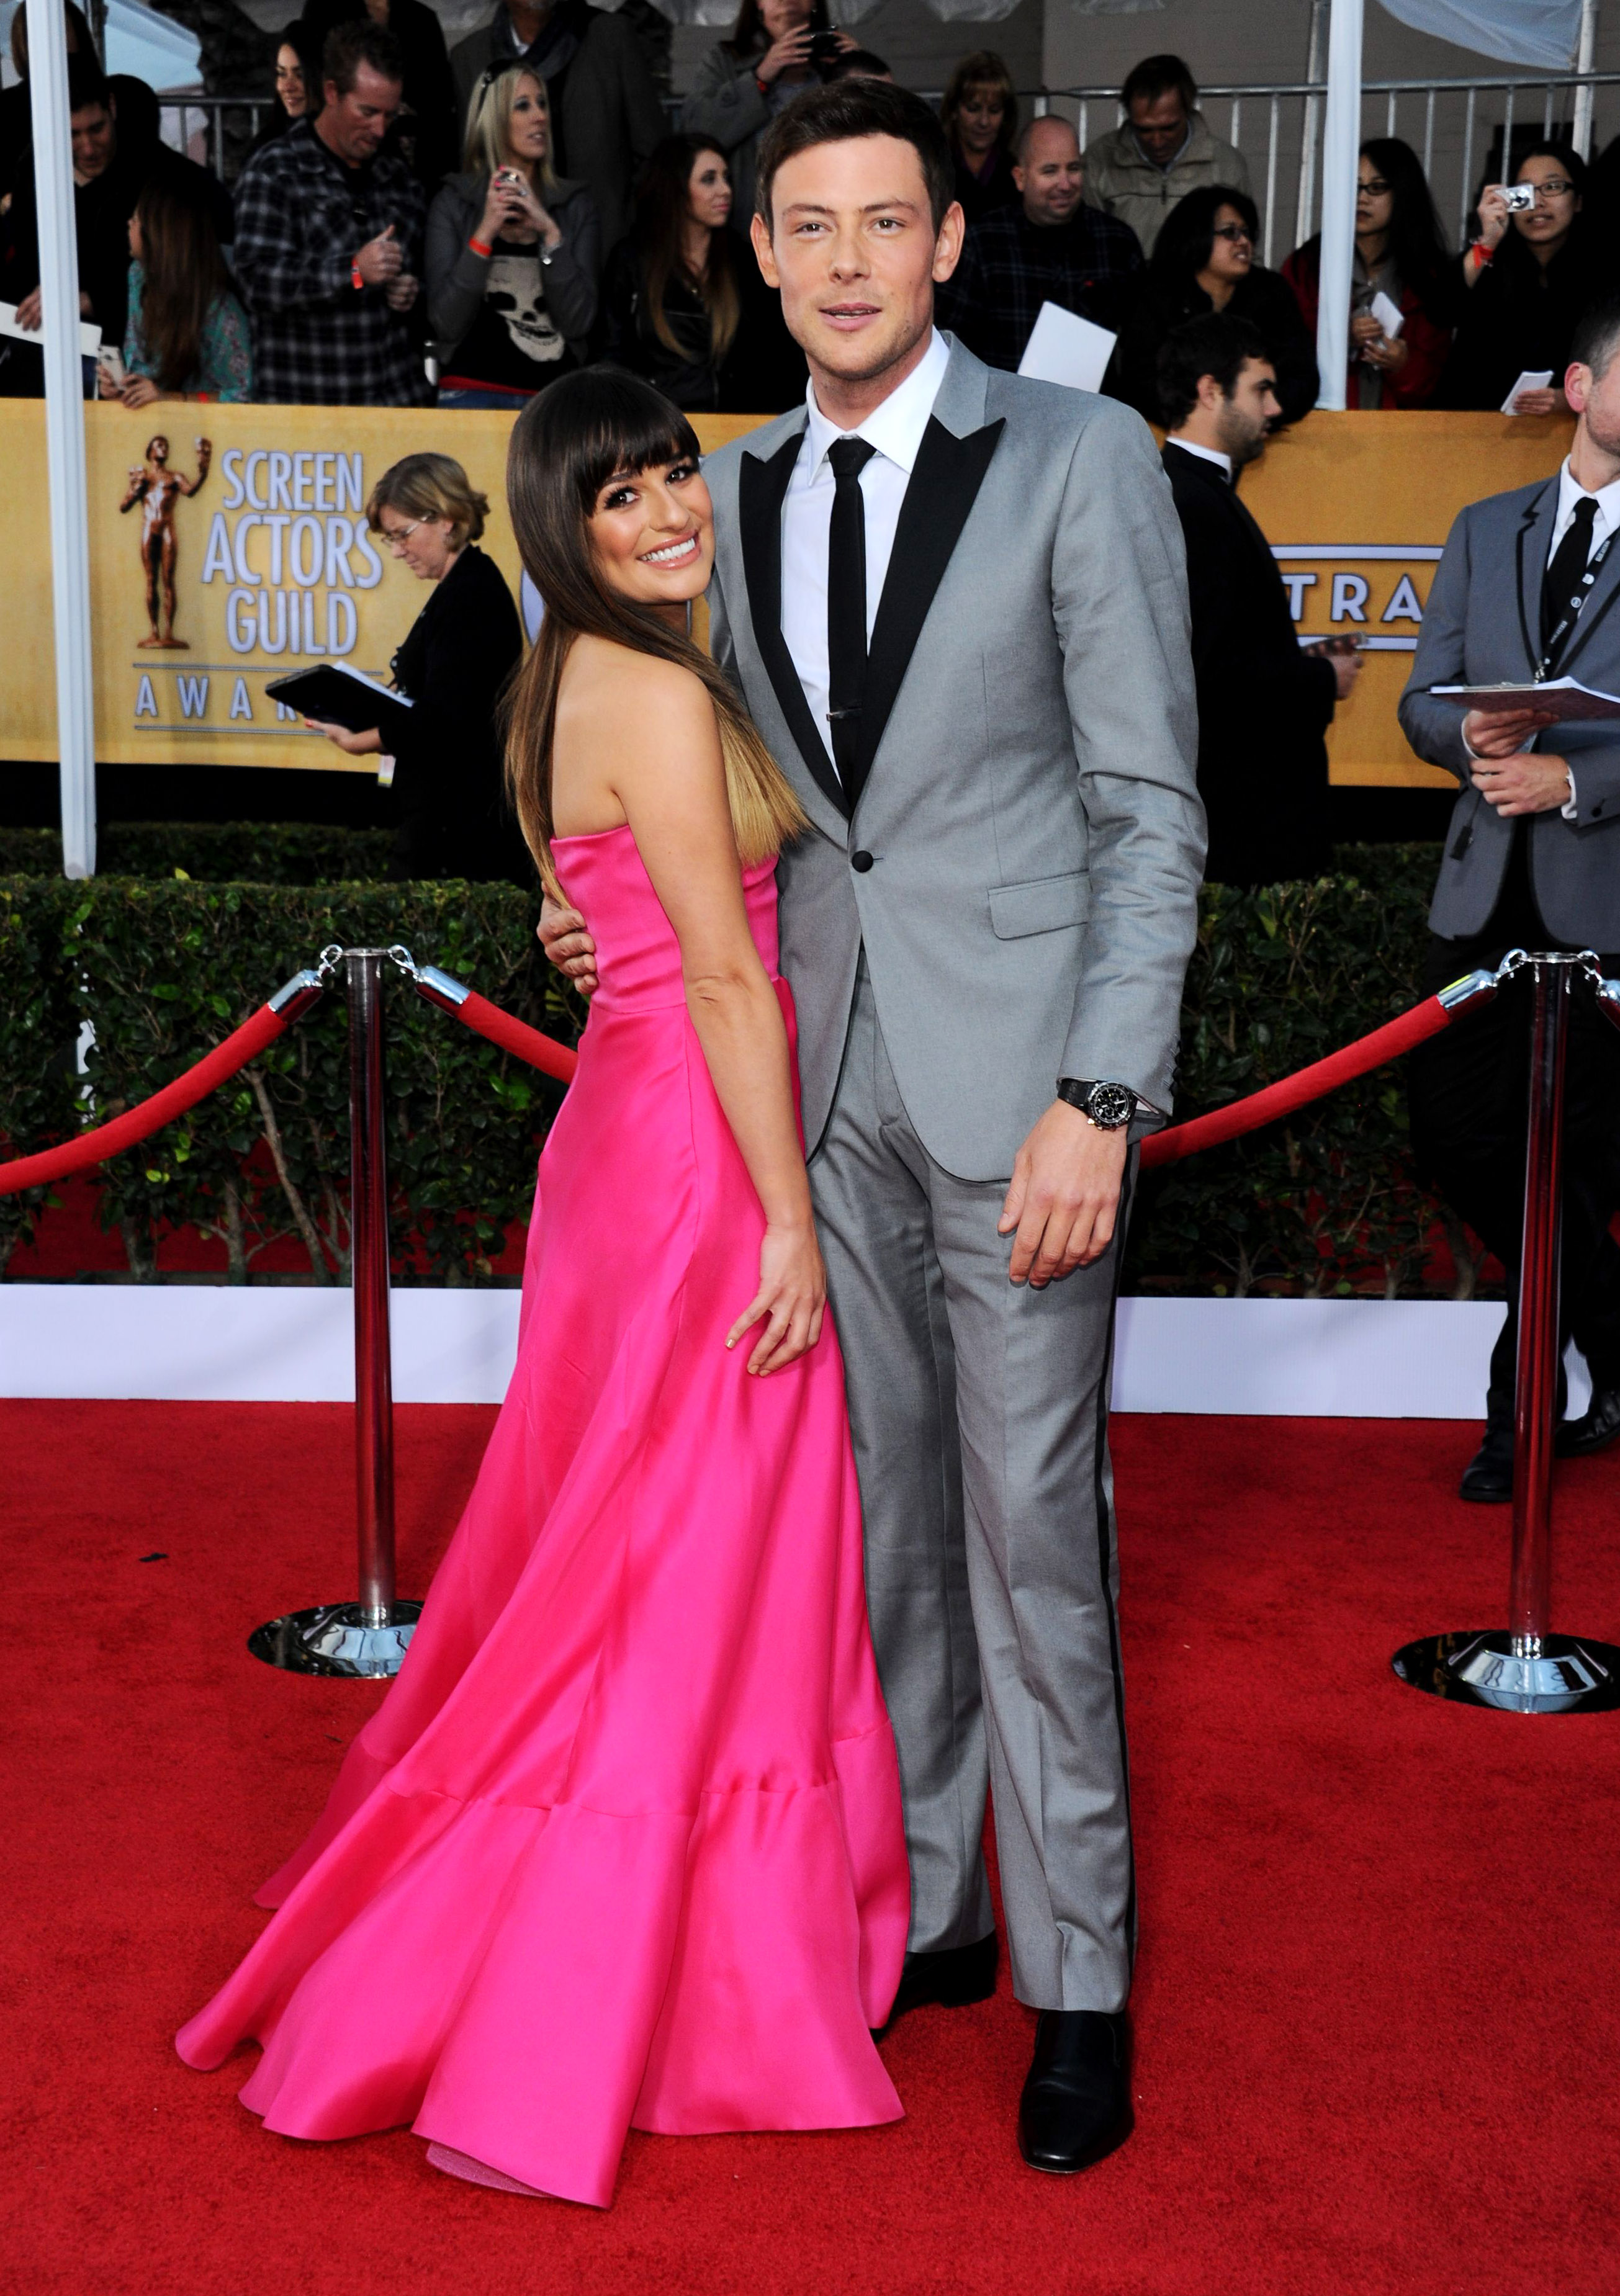 Glee stars dating in real life 2013 glee stars dating in real life 2013